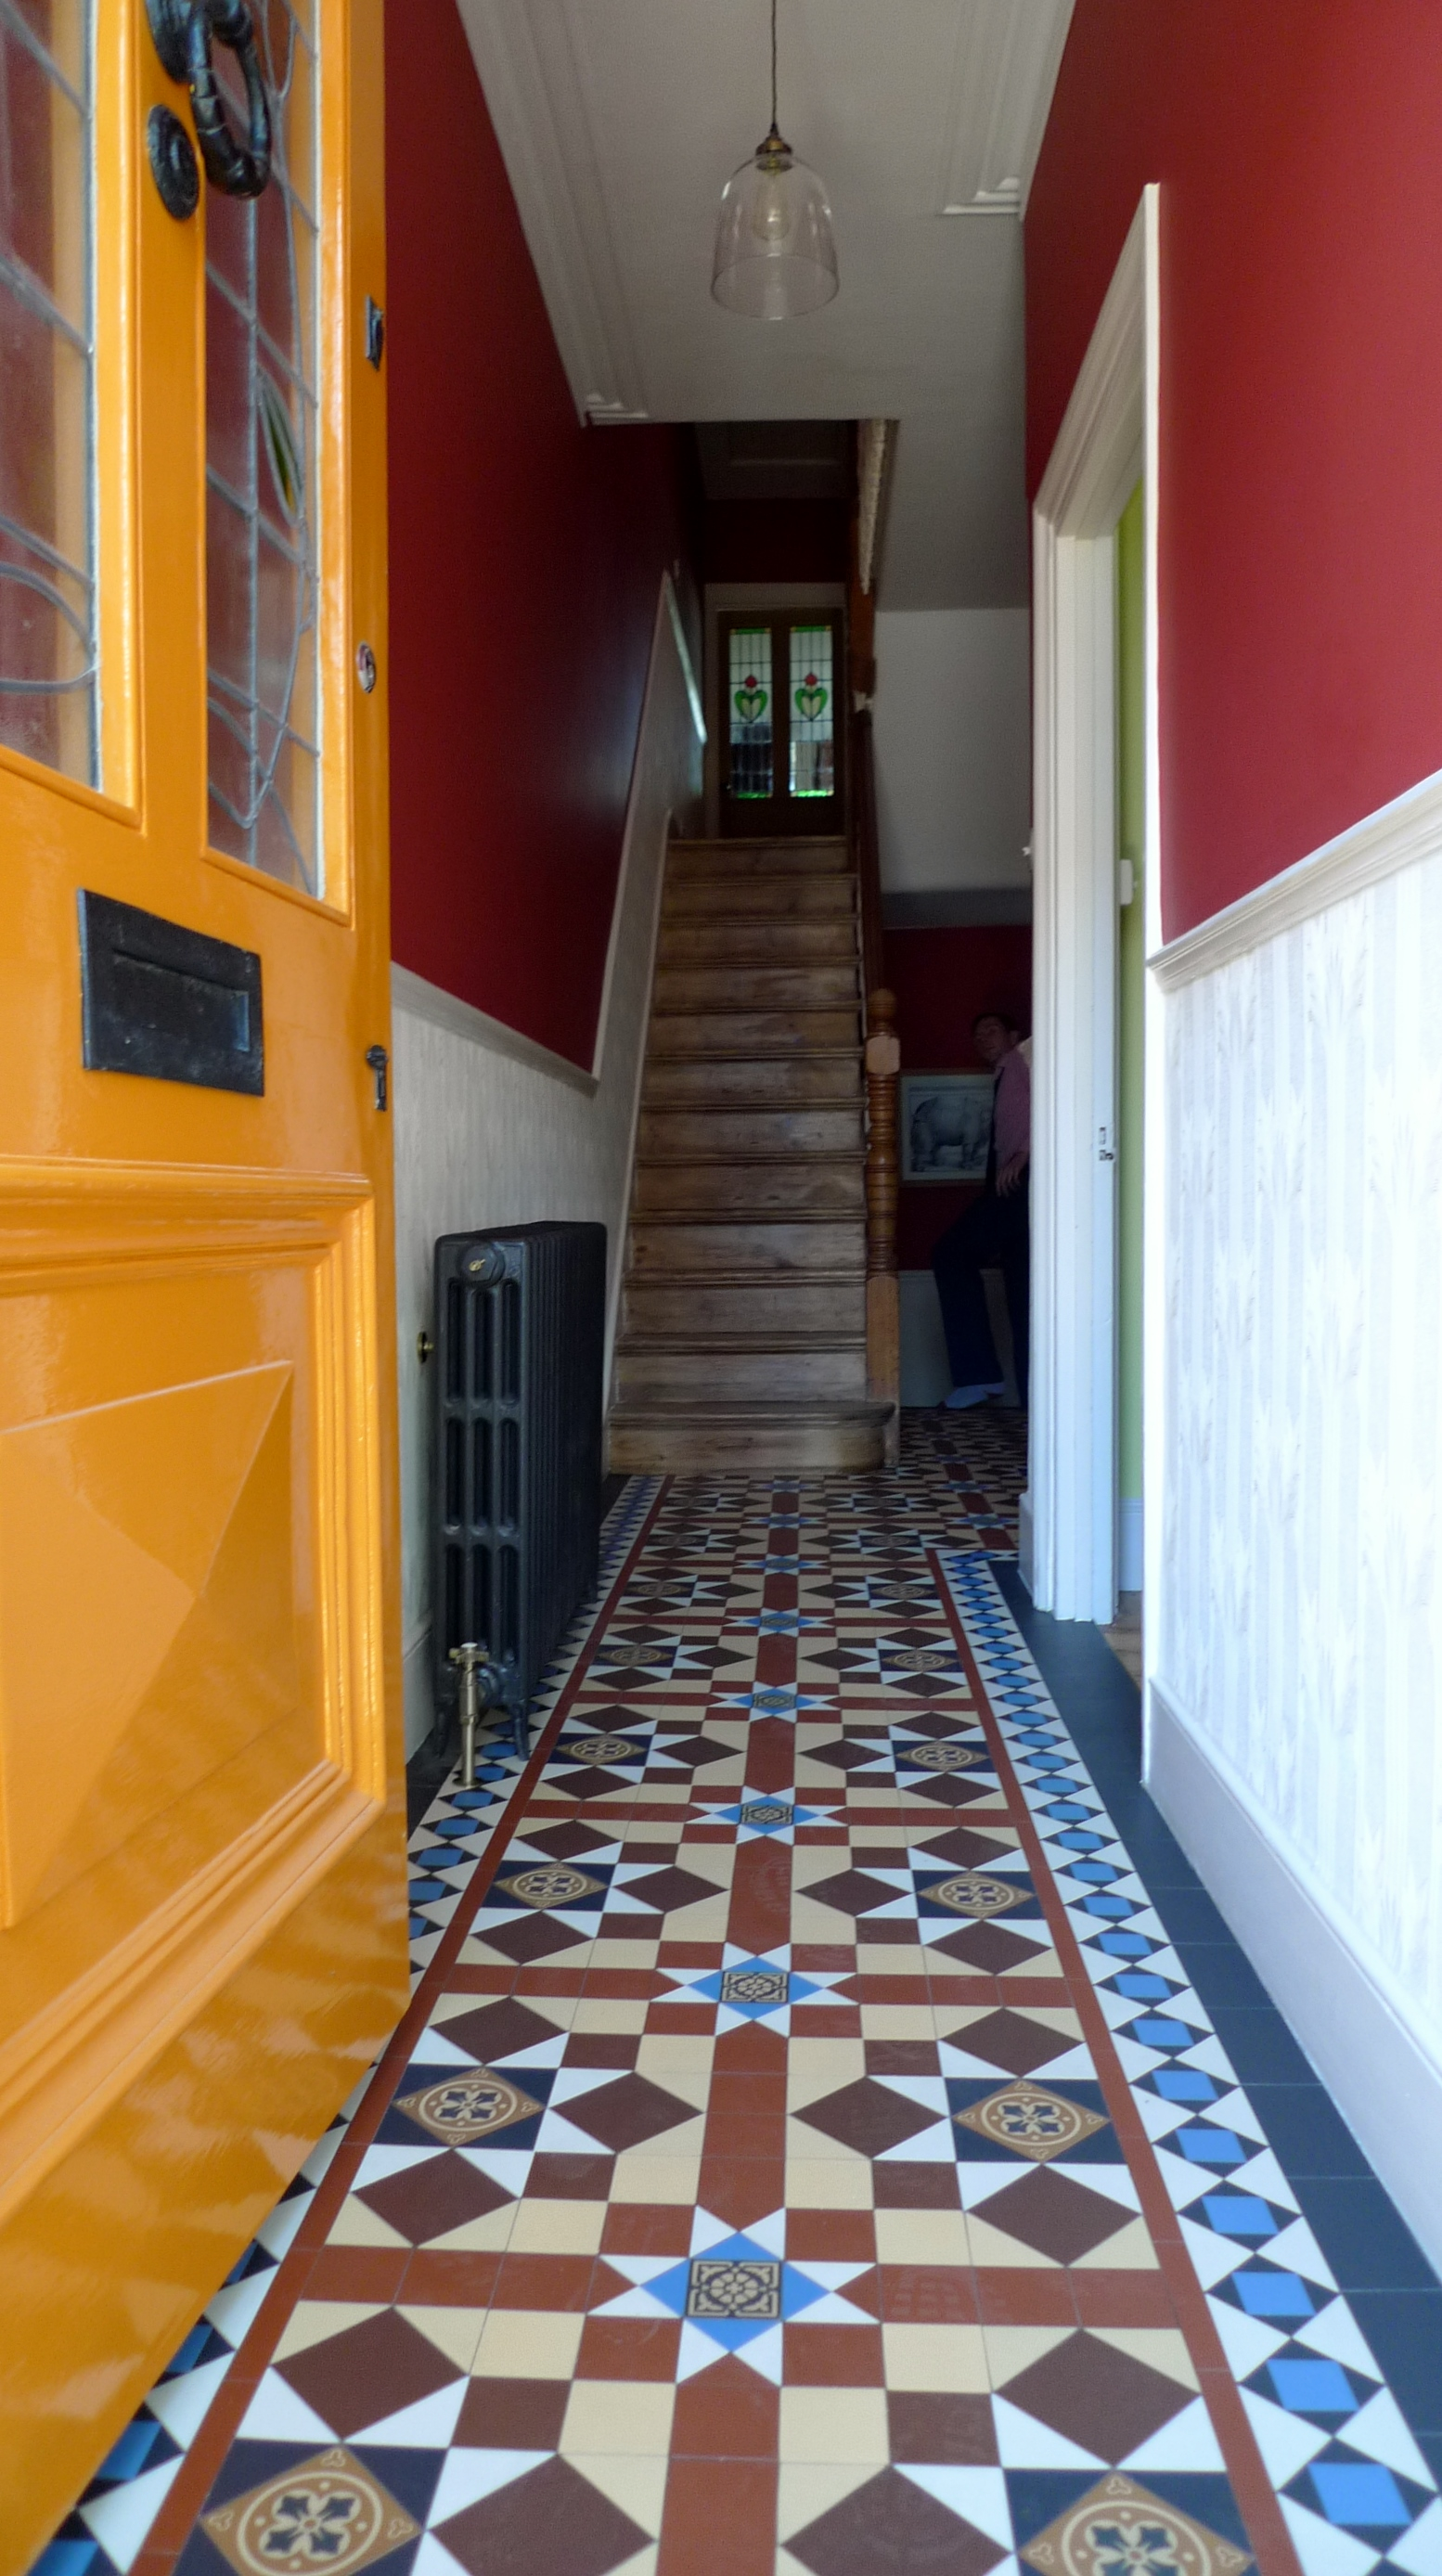 mosaic tile hallway reproduction london